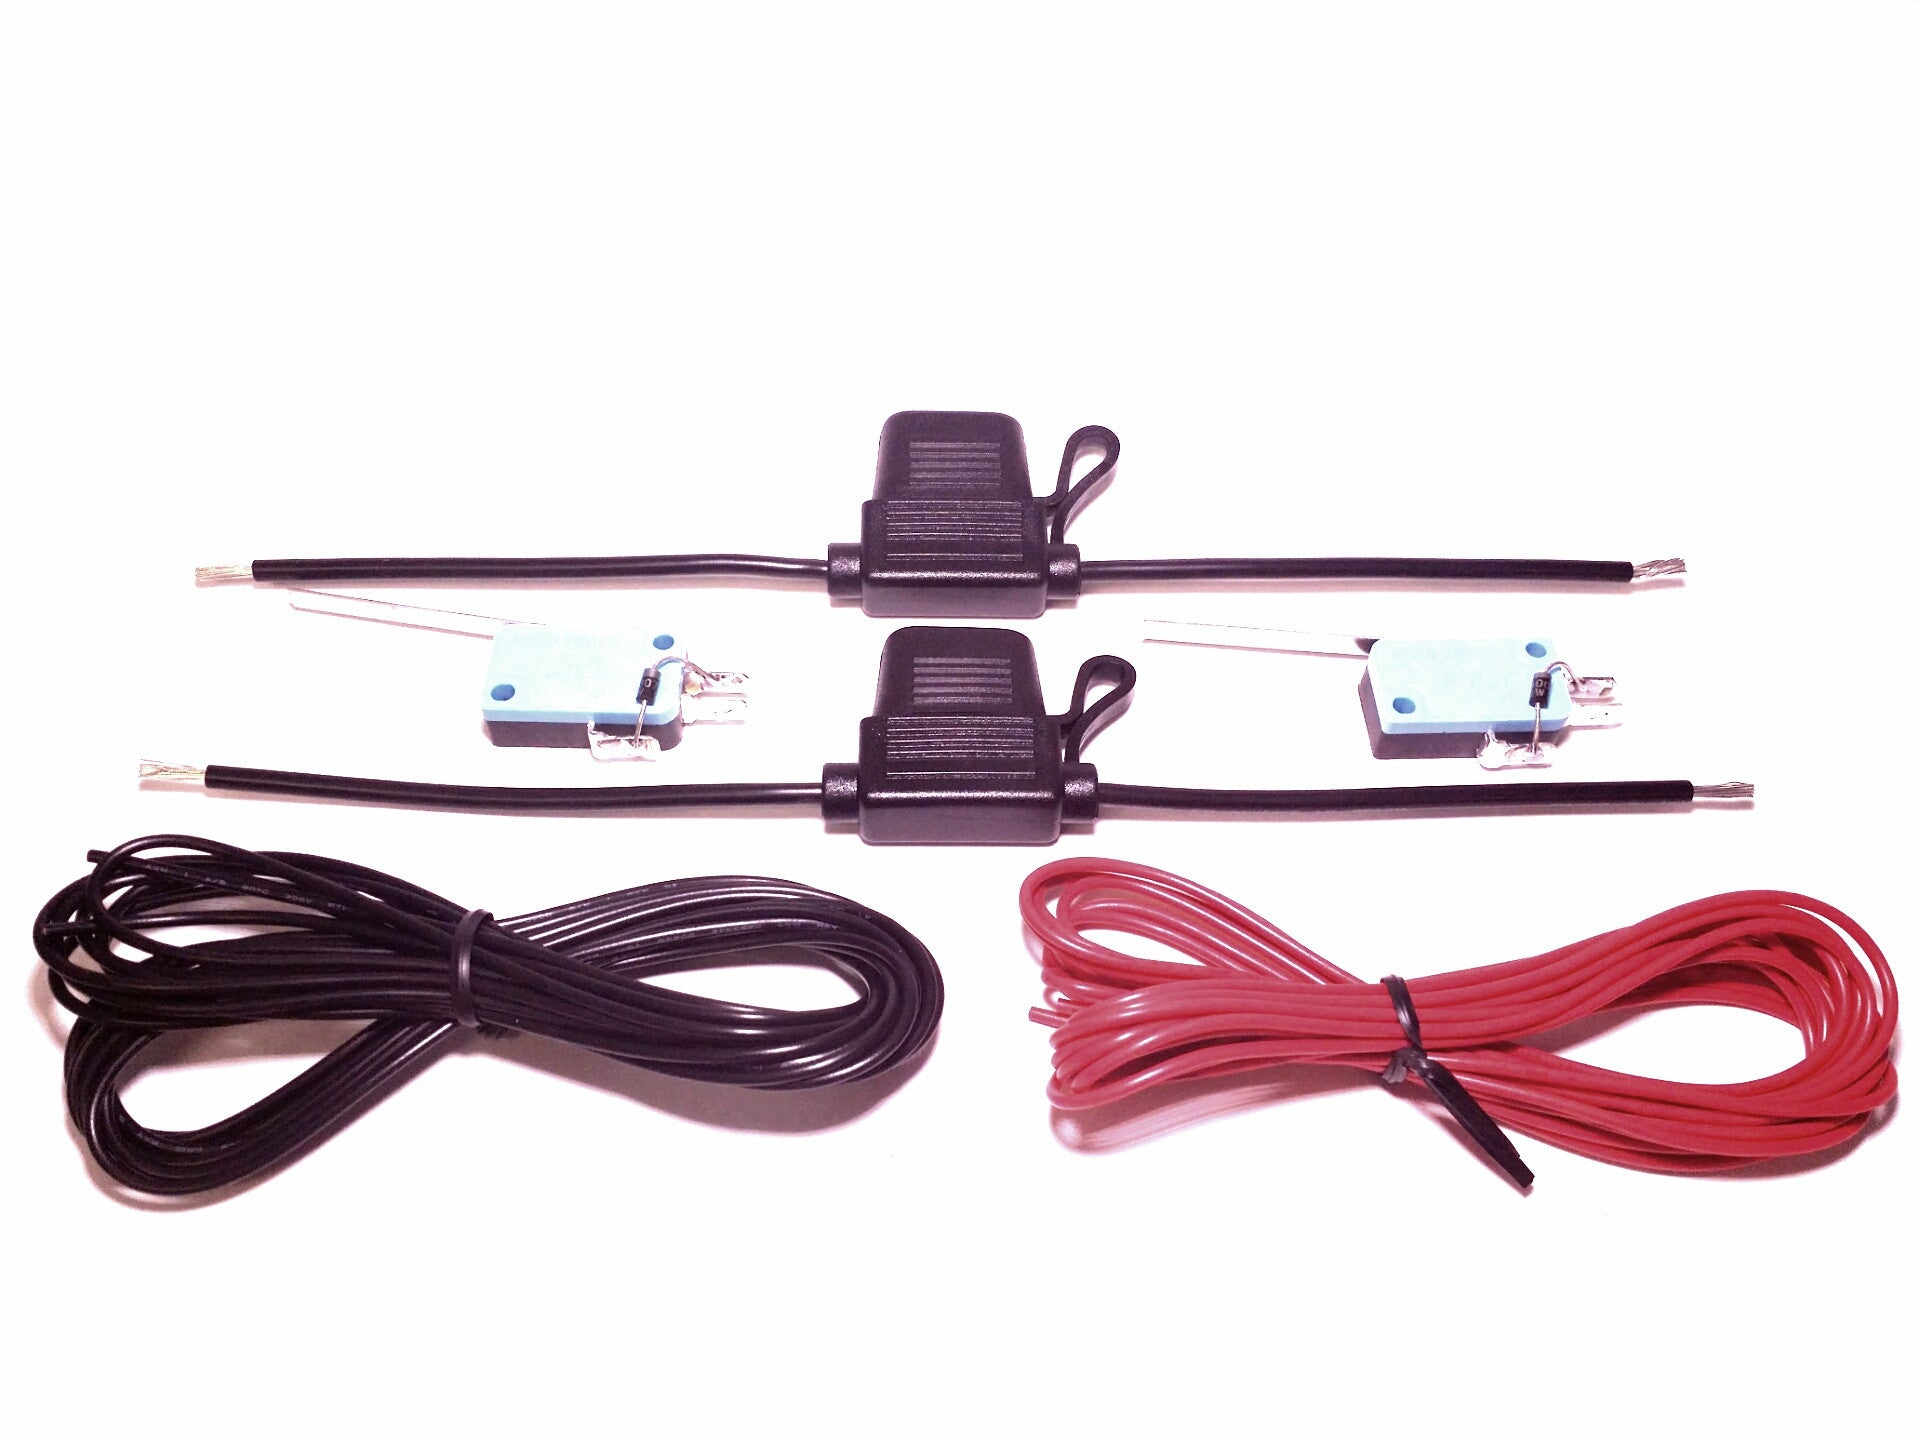 External Limit Switch Kit For Actuators Firgelli 12vdc Wiring Diagrams Linear Actuator